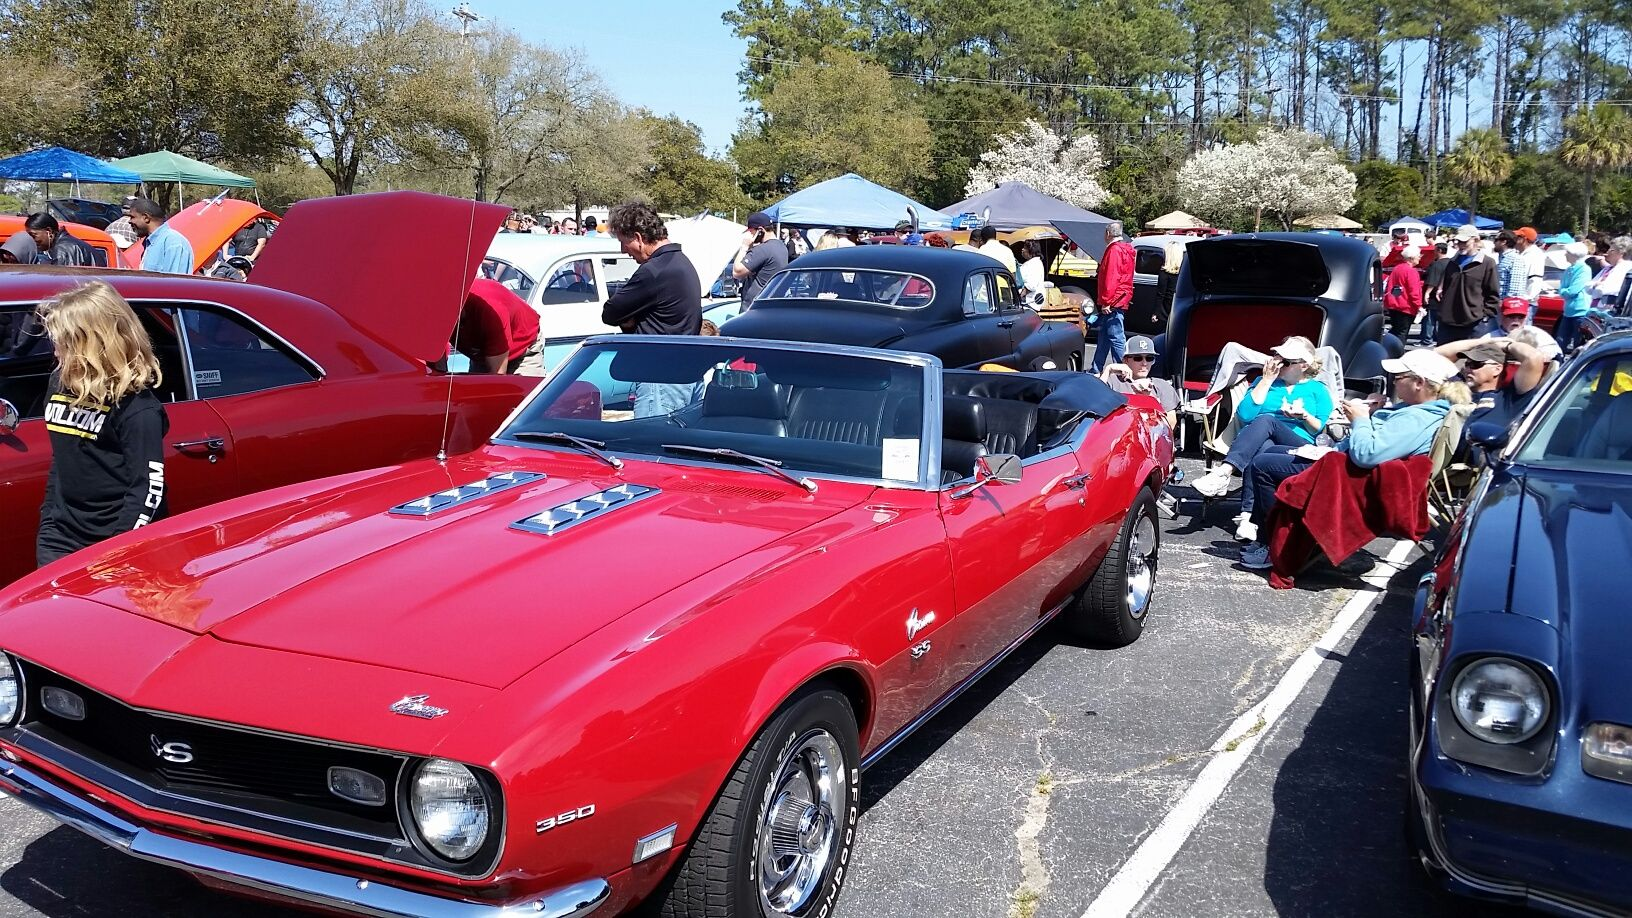 Car Show Myrtle Beach SC March Cars I Wouldnt Mind Having - Myrtle beach car show